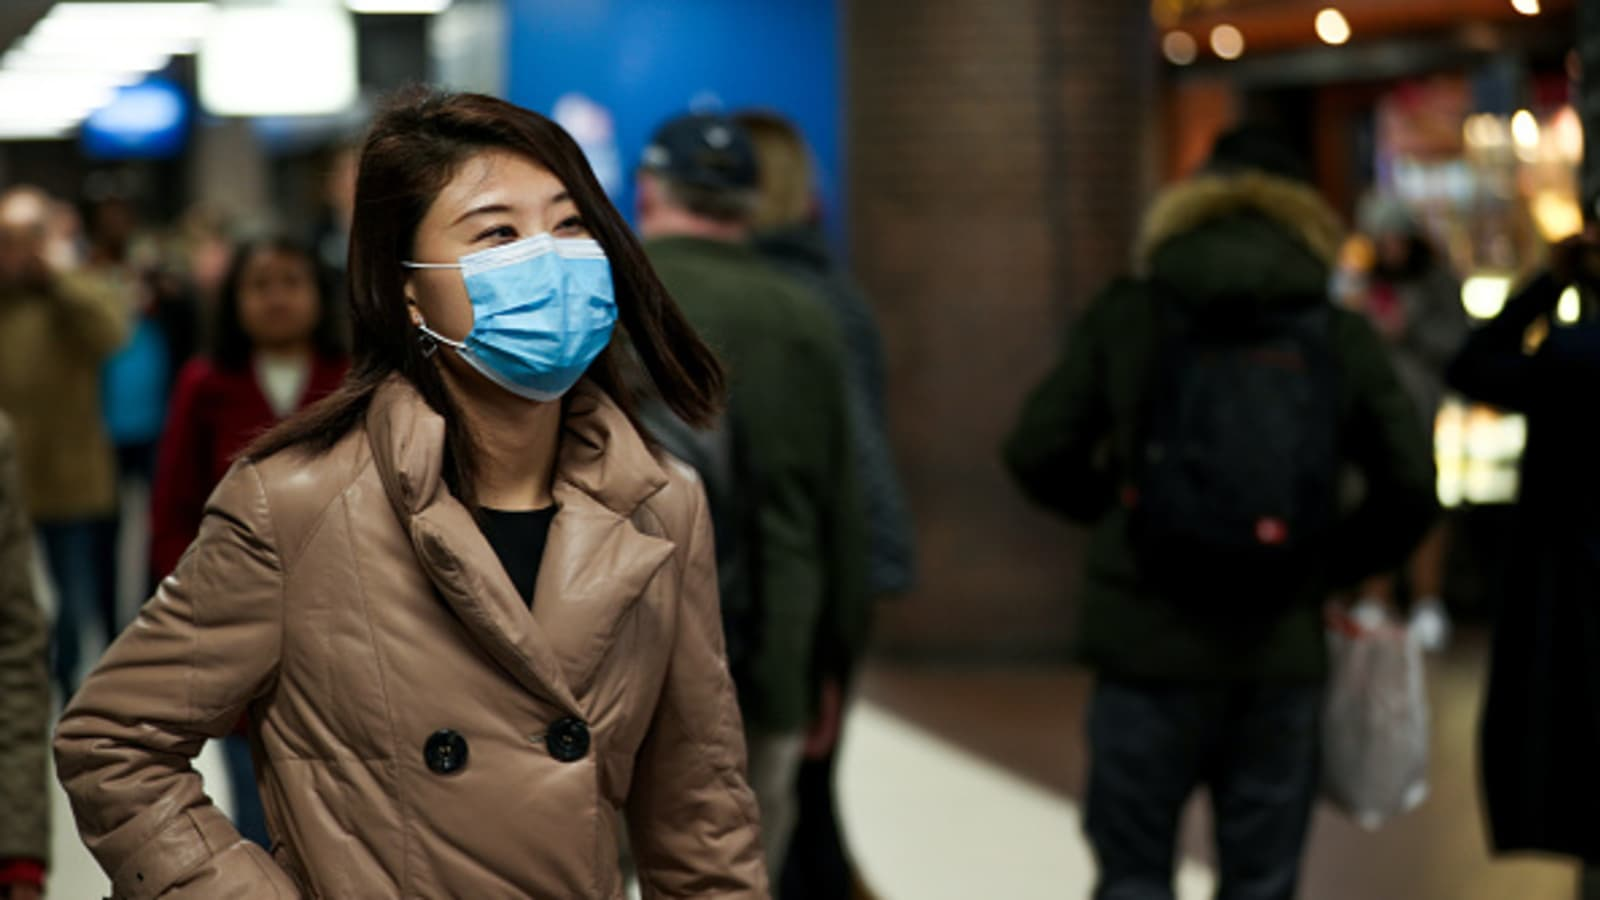 500 surgical mask